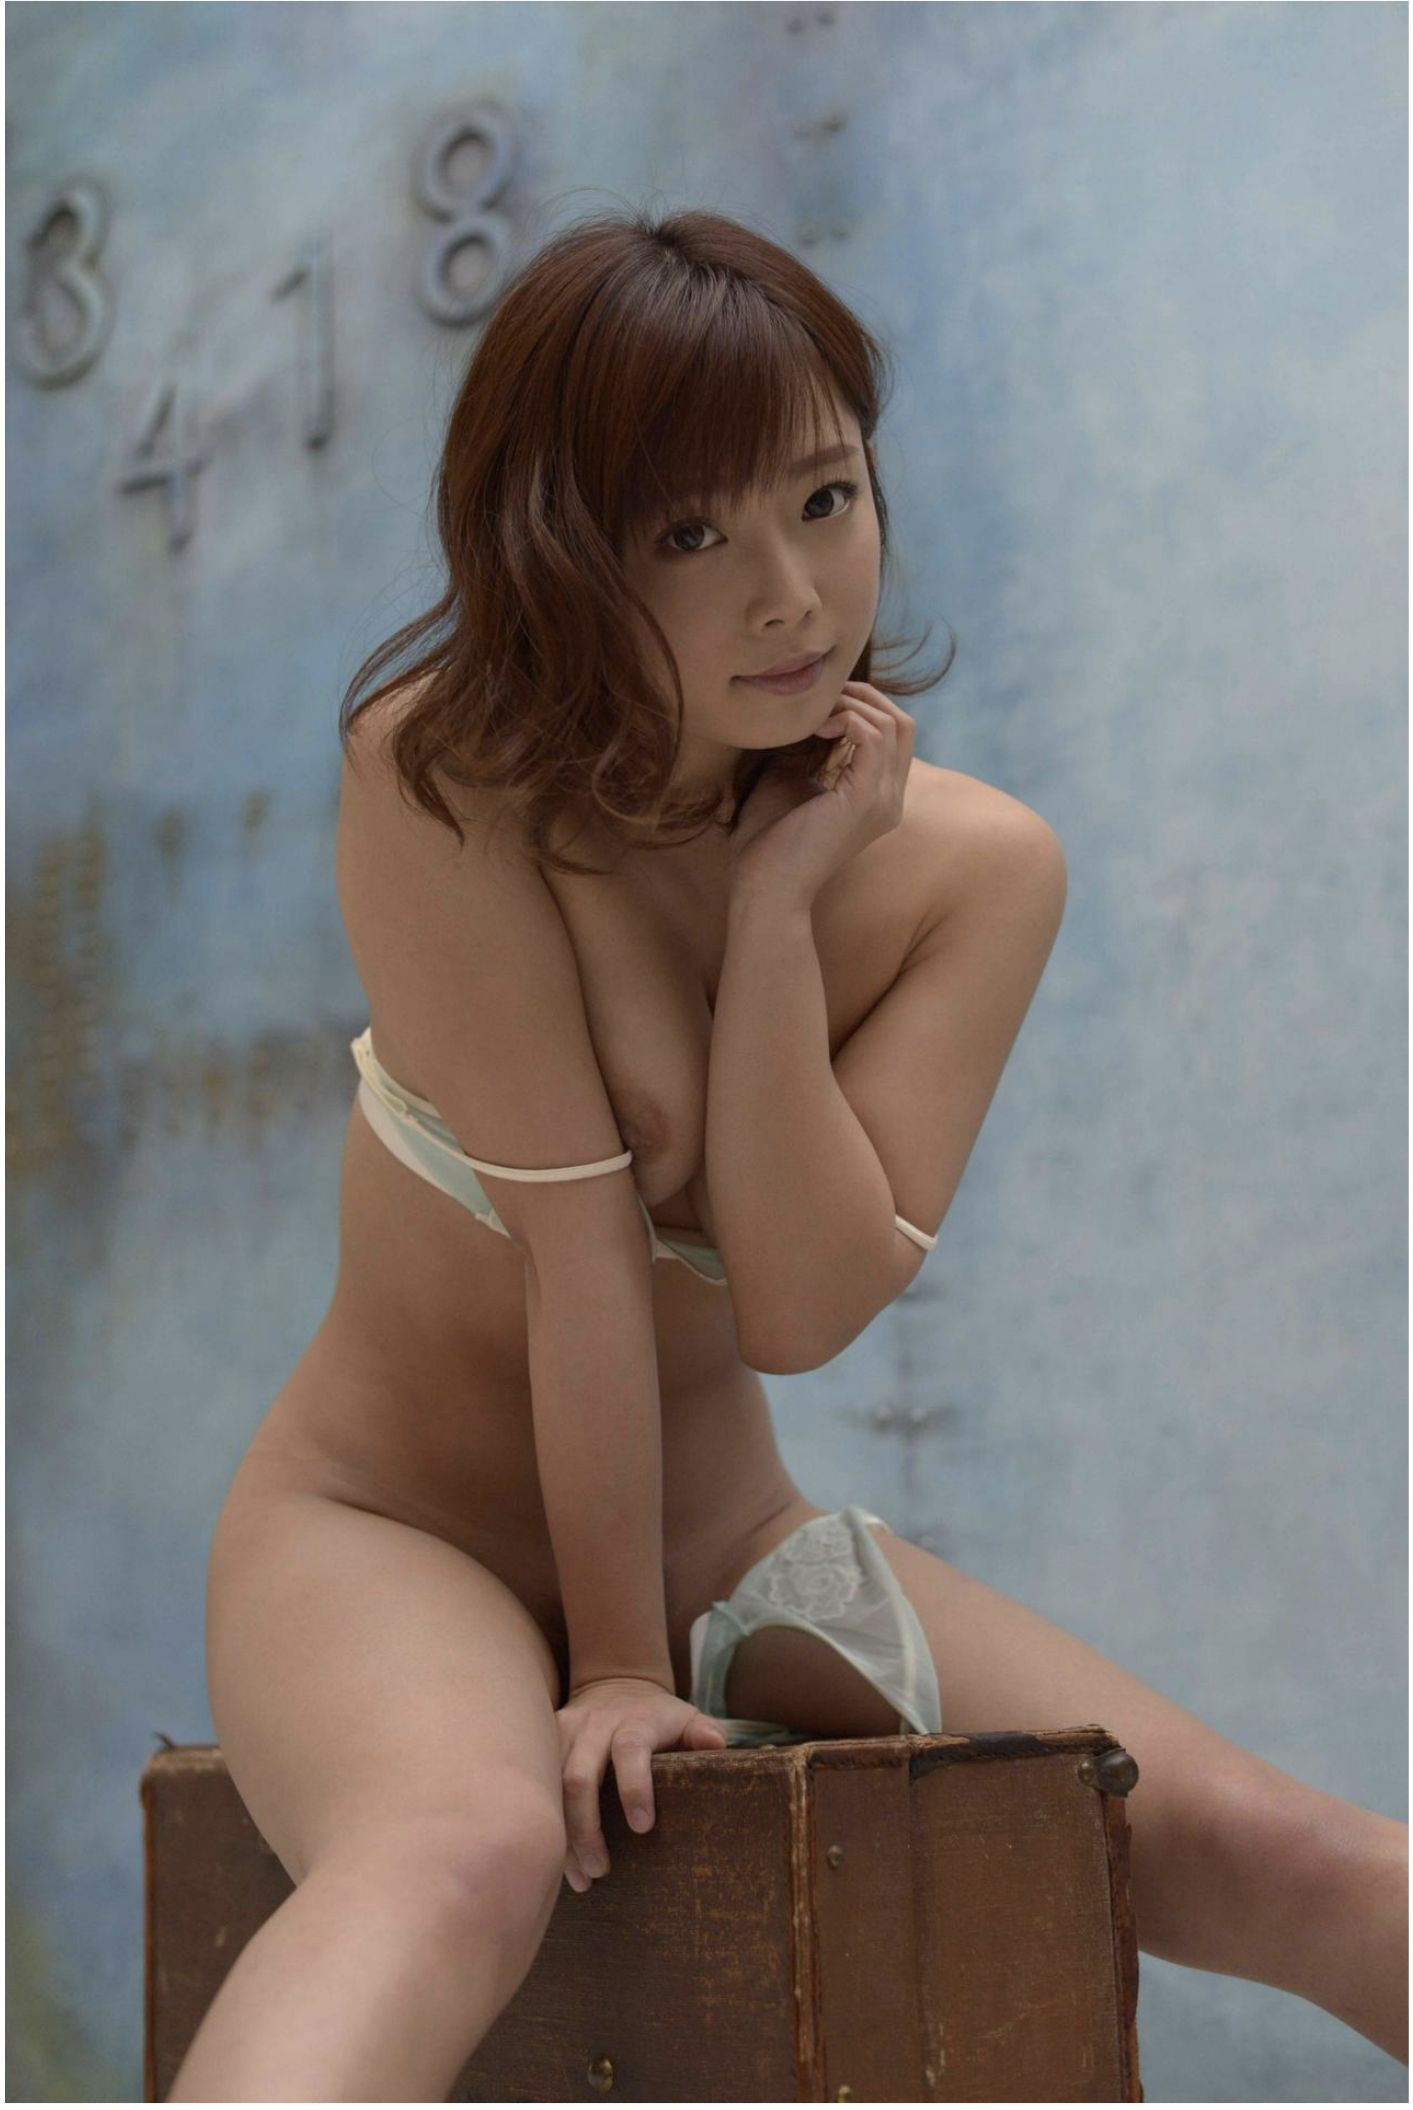 SOFT ON DEMAND GRAVURE COLLECTION 紗倉まな04 photo 105